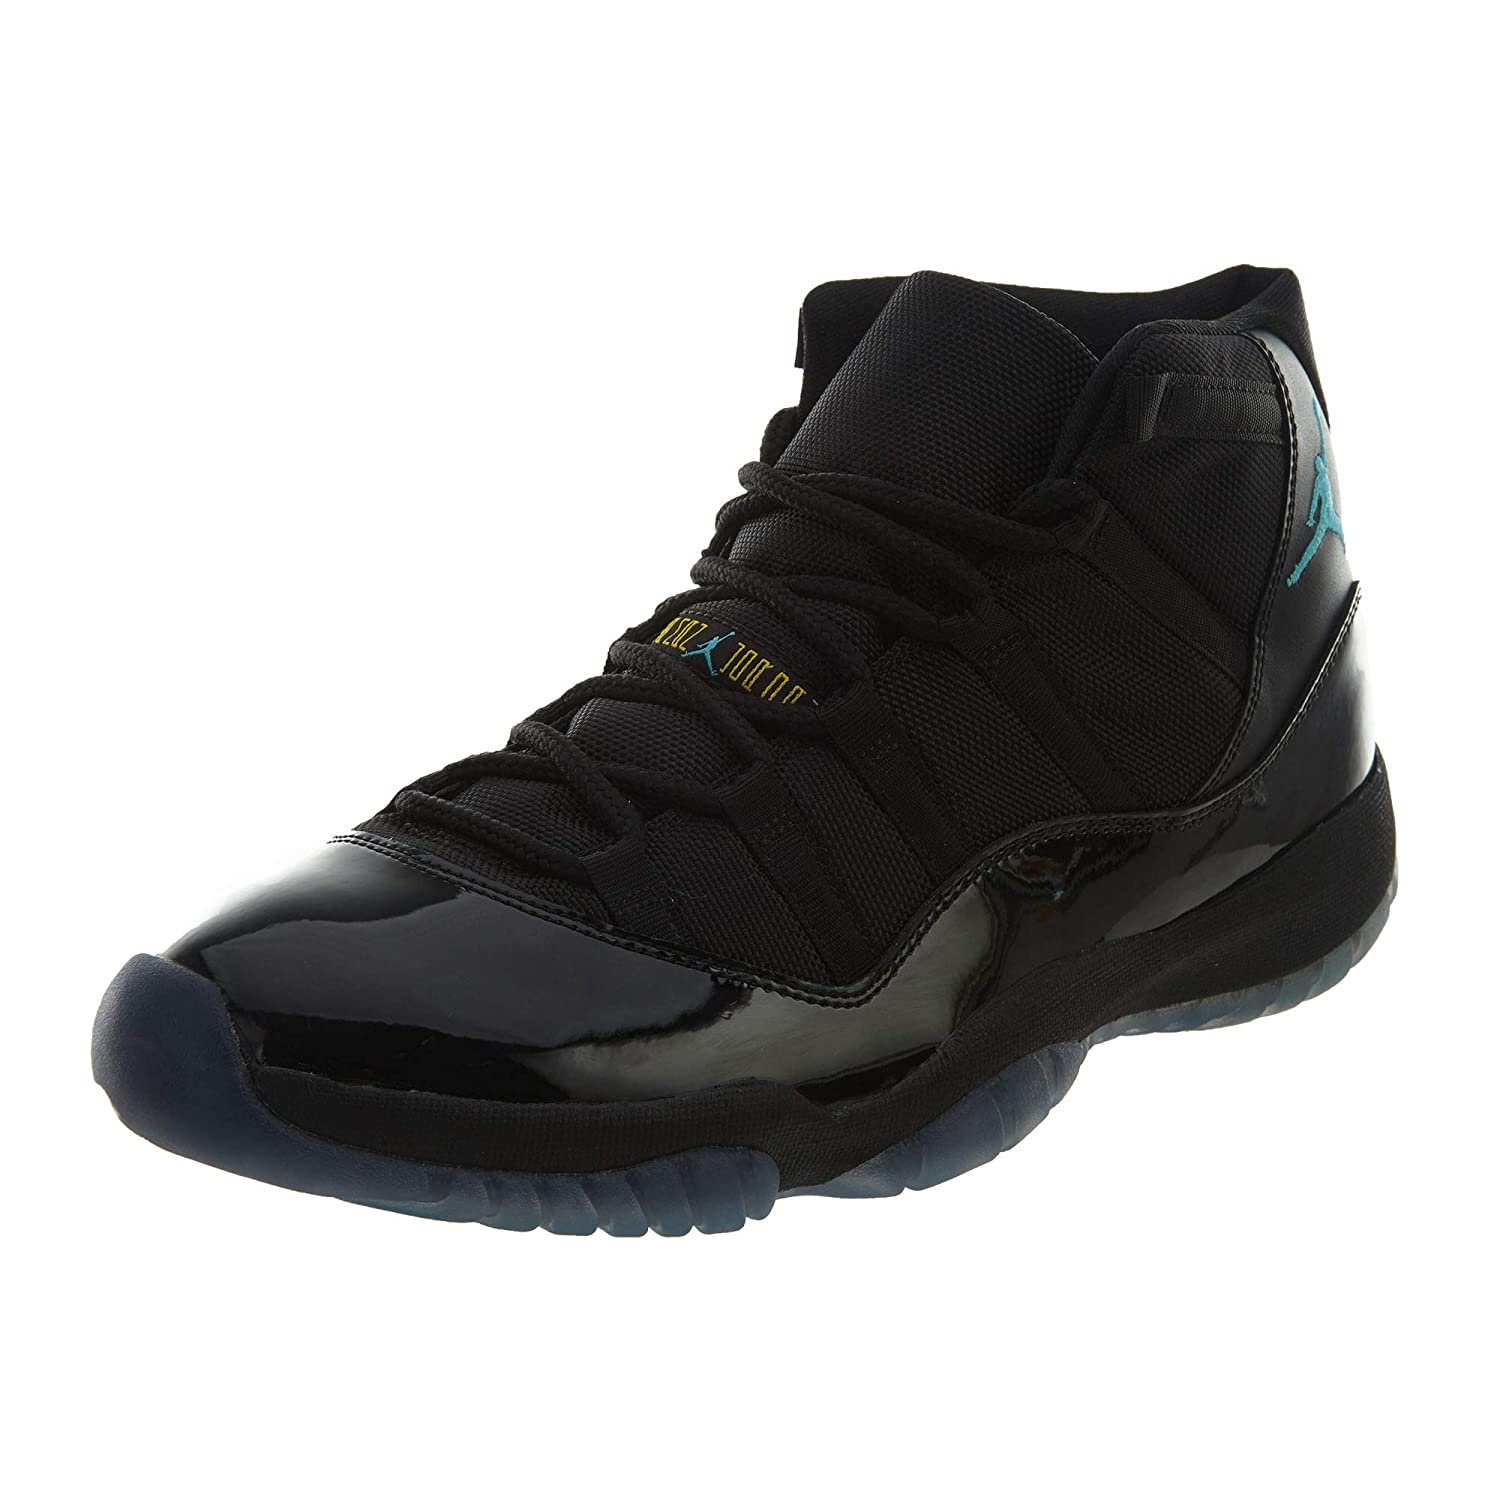 online retailer a3117 32935 Nike Mens Air Jordan 11 Retro Black/Gamma Blue Leather Basketball Shoes  Size 11